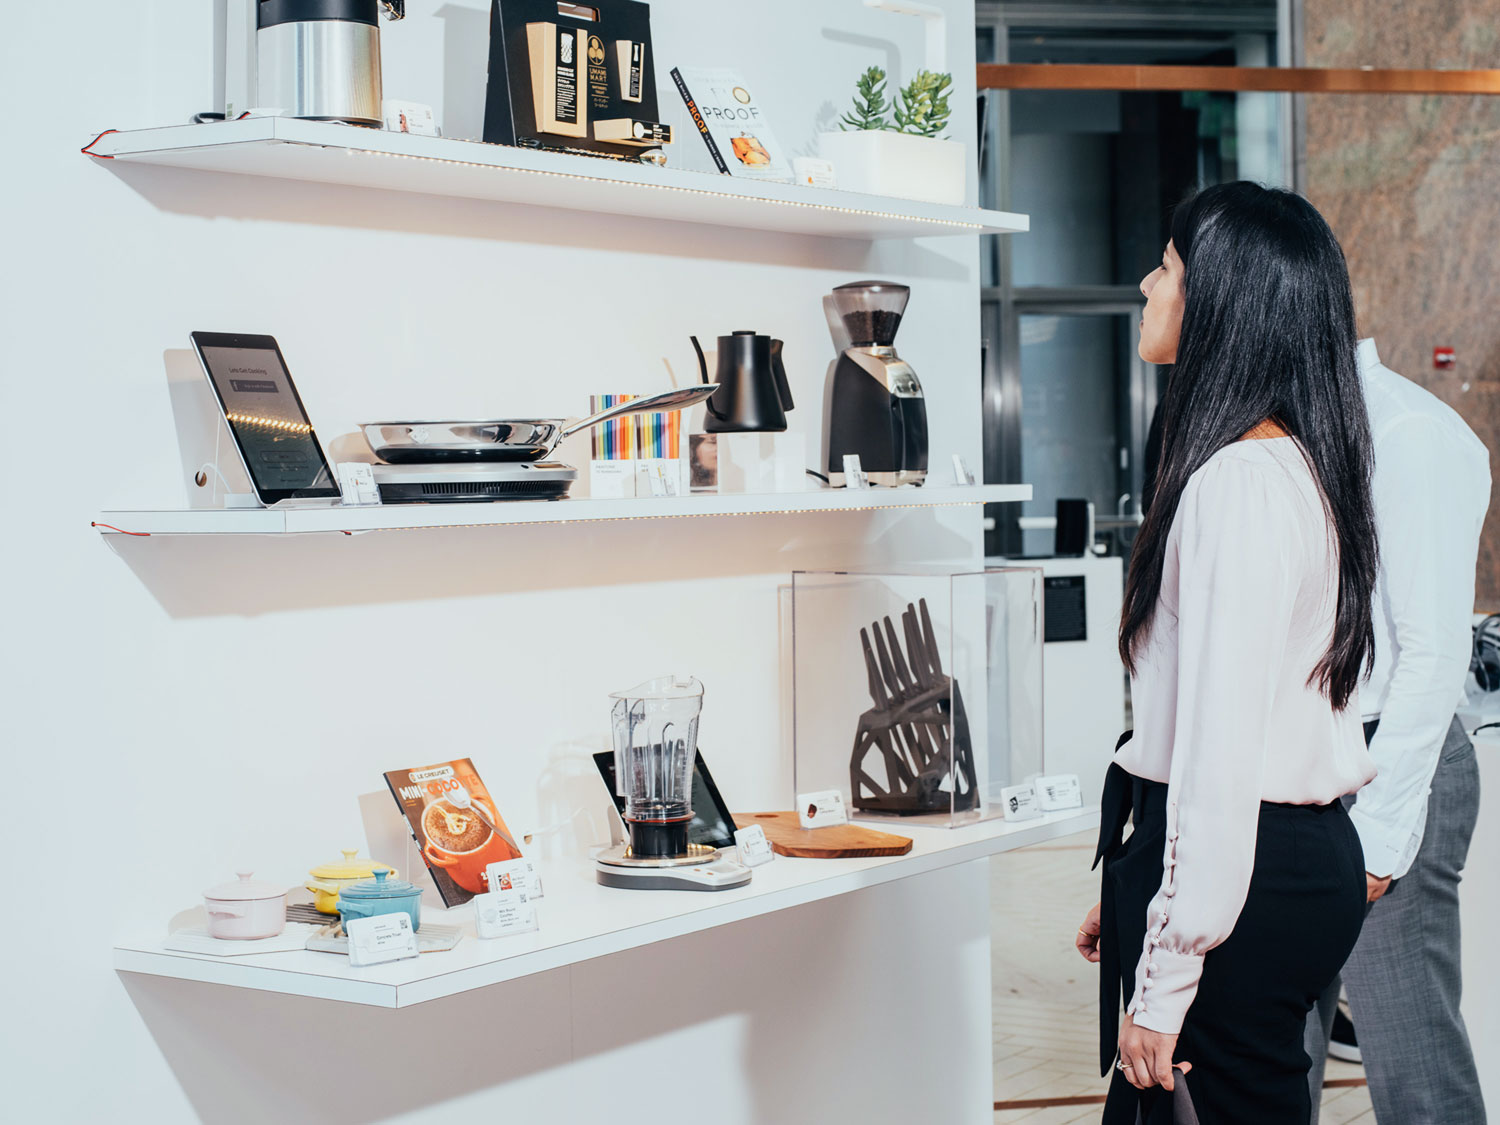 Lady browsing Wired Store's products